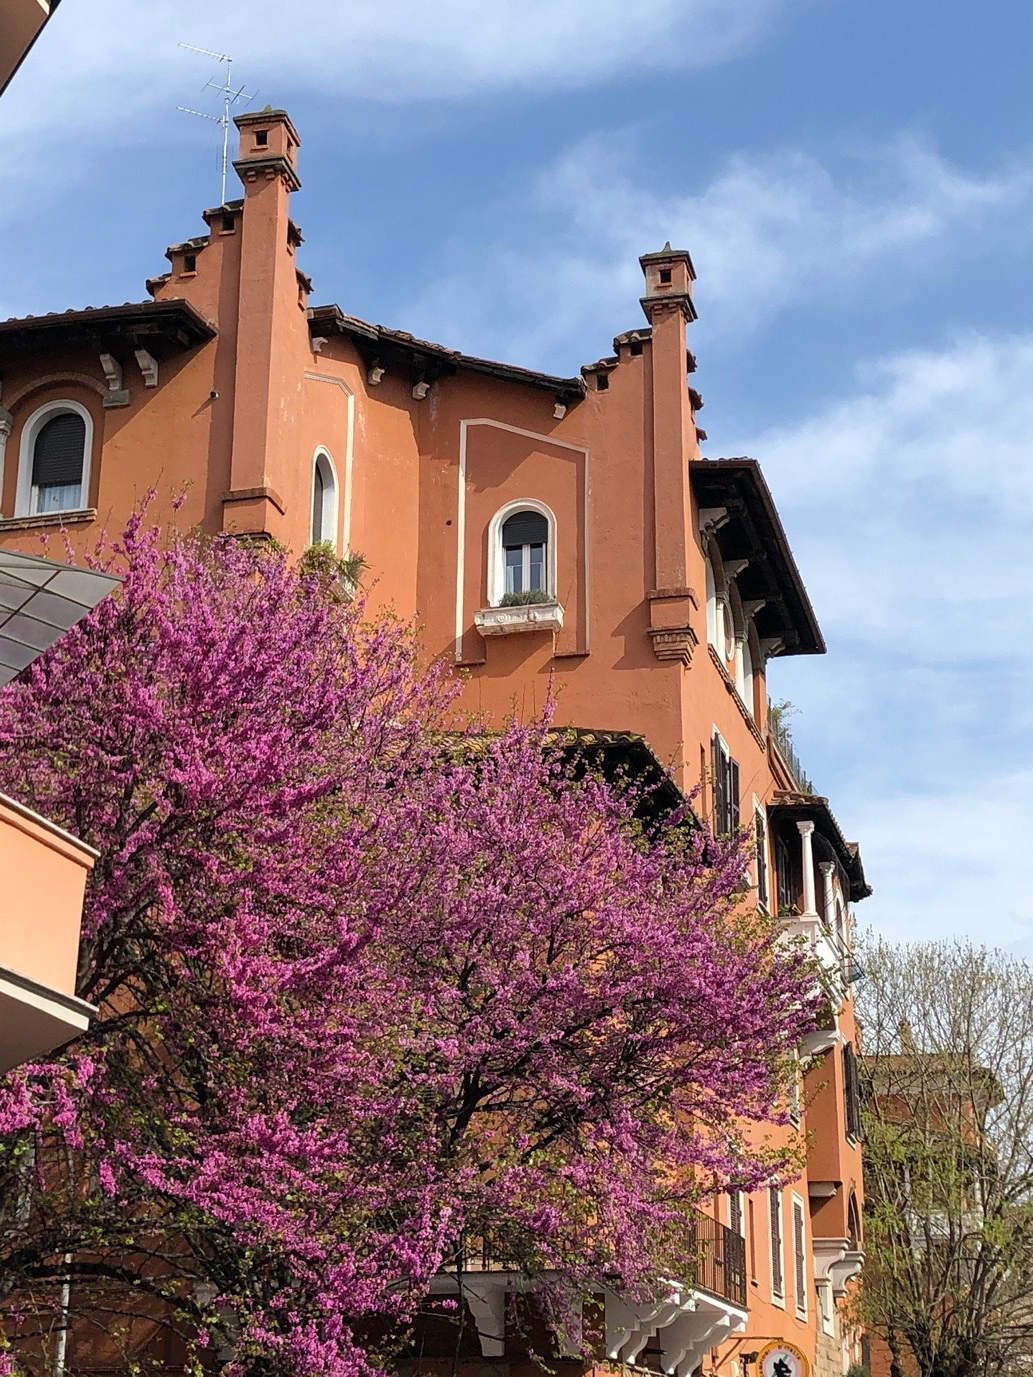 Spring's purple blooms ignore coronavirus as they offset Garbatella's iconic architecture.